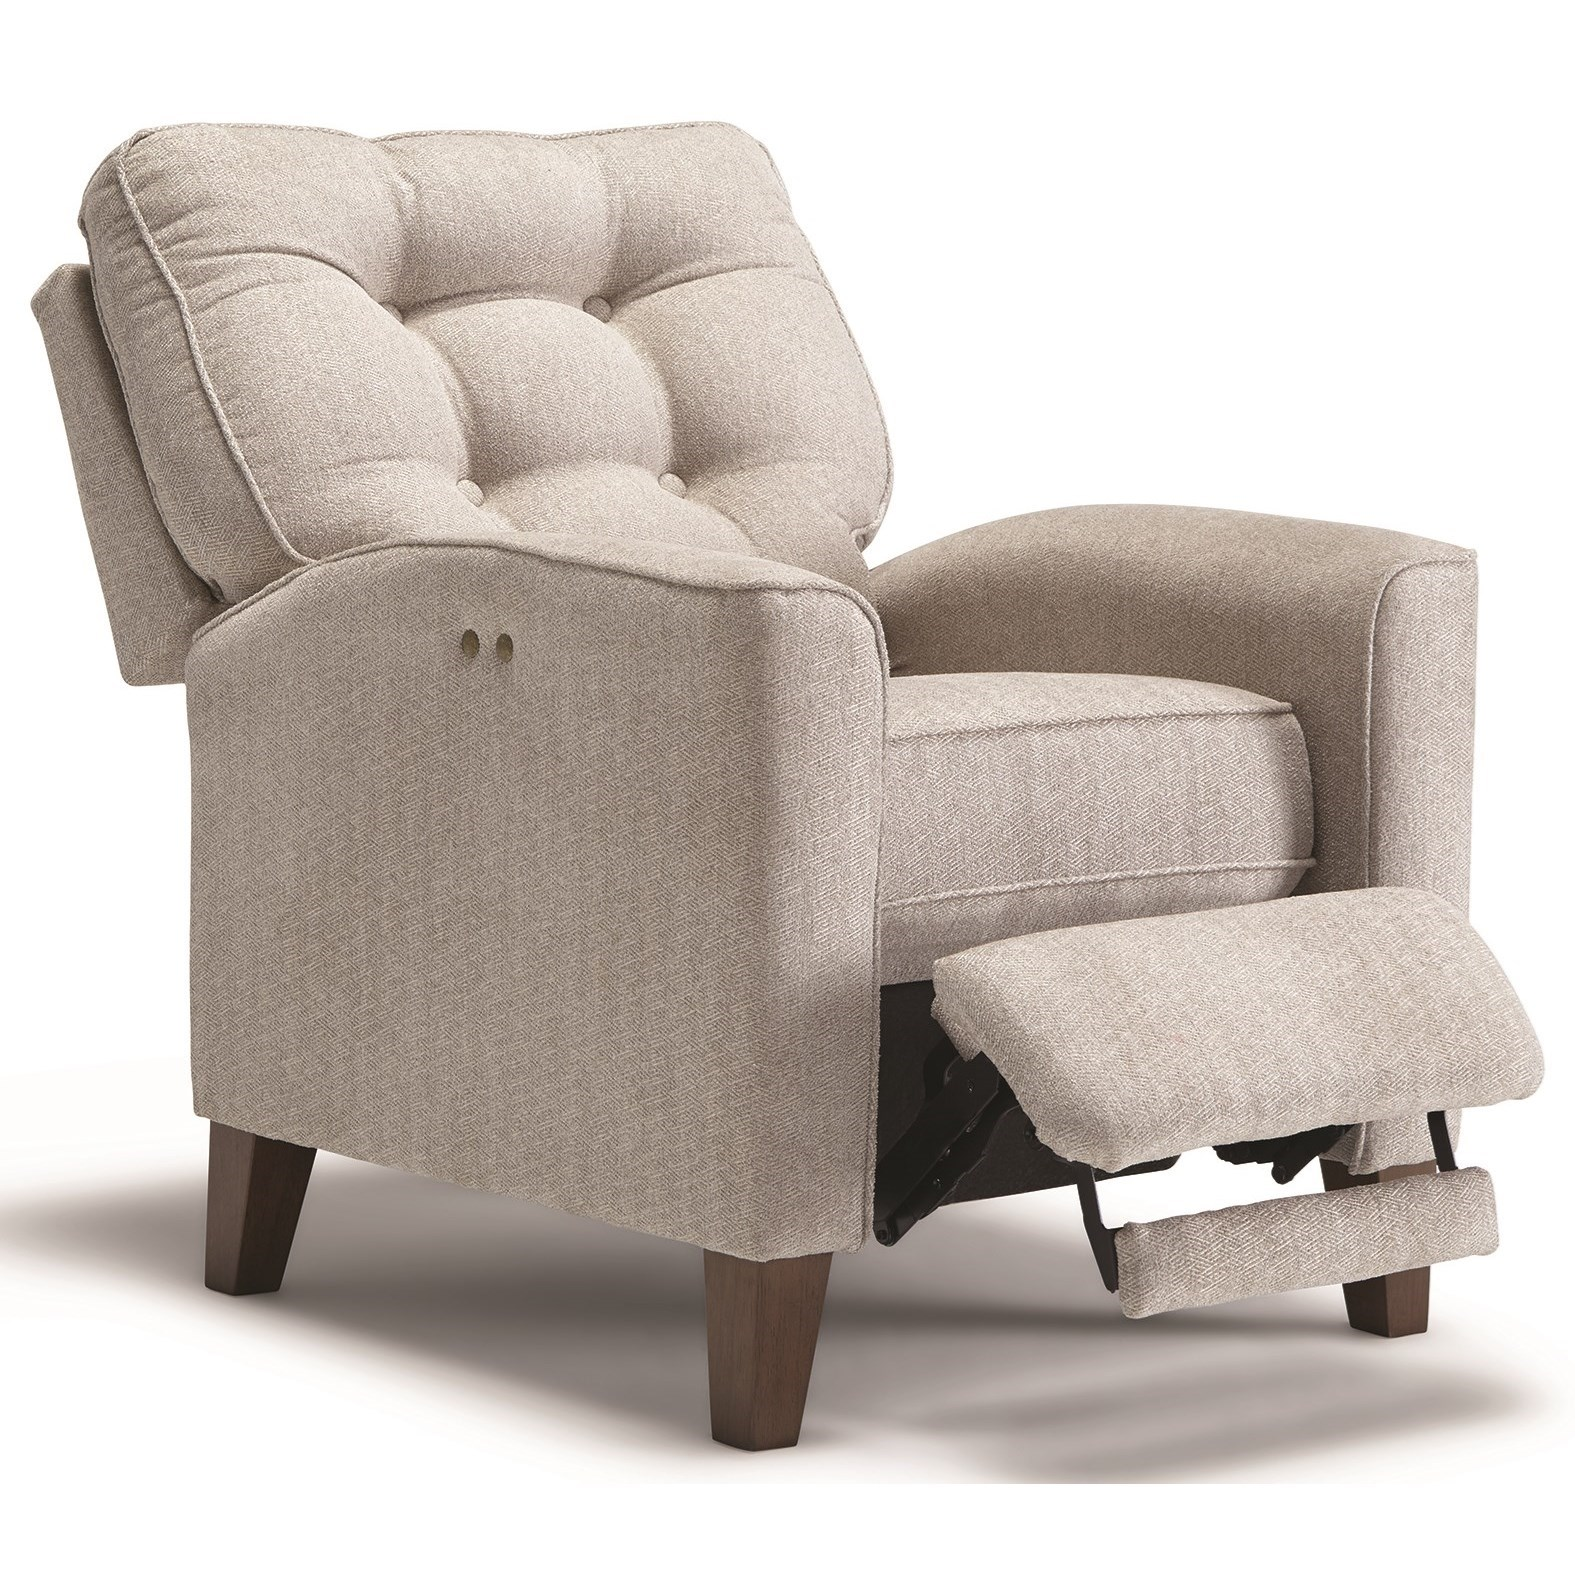 Best Home Furnishings Karinta Power High Leg Recliner With